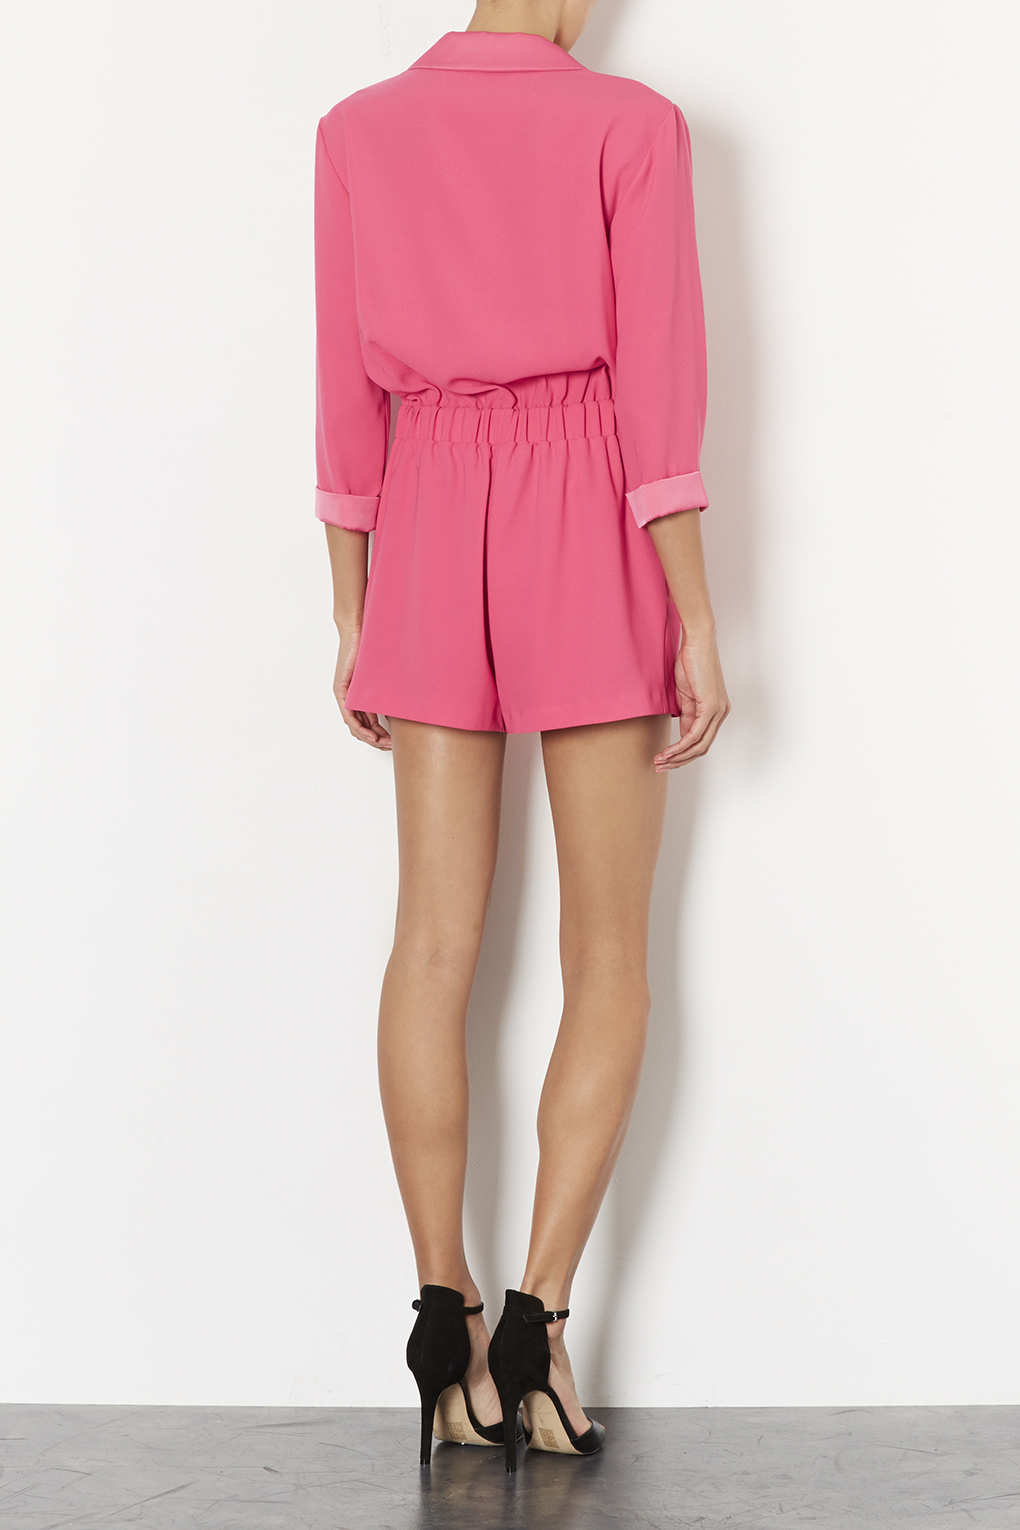 86386976fa Lyst - TOPSHOP Wrap Pyjama Playsuit in Pink